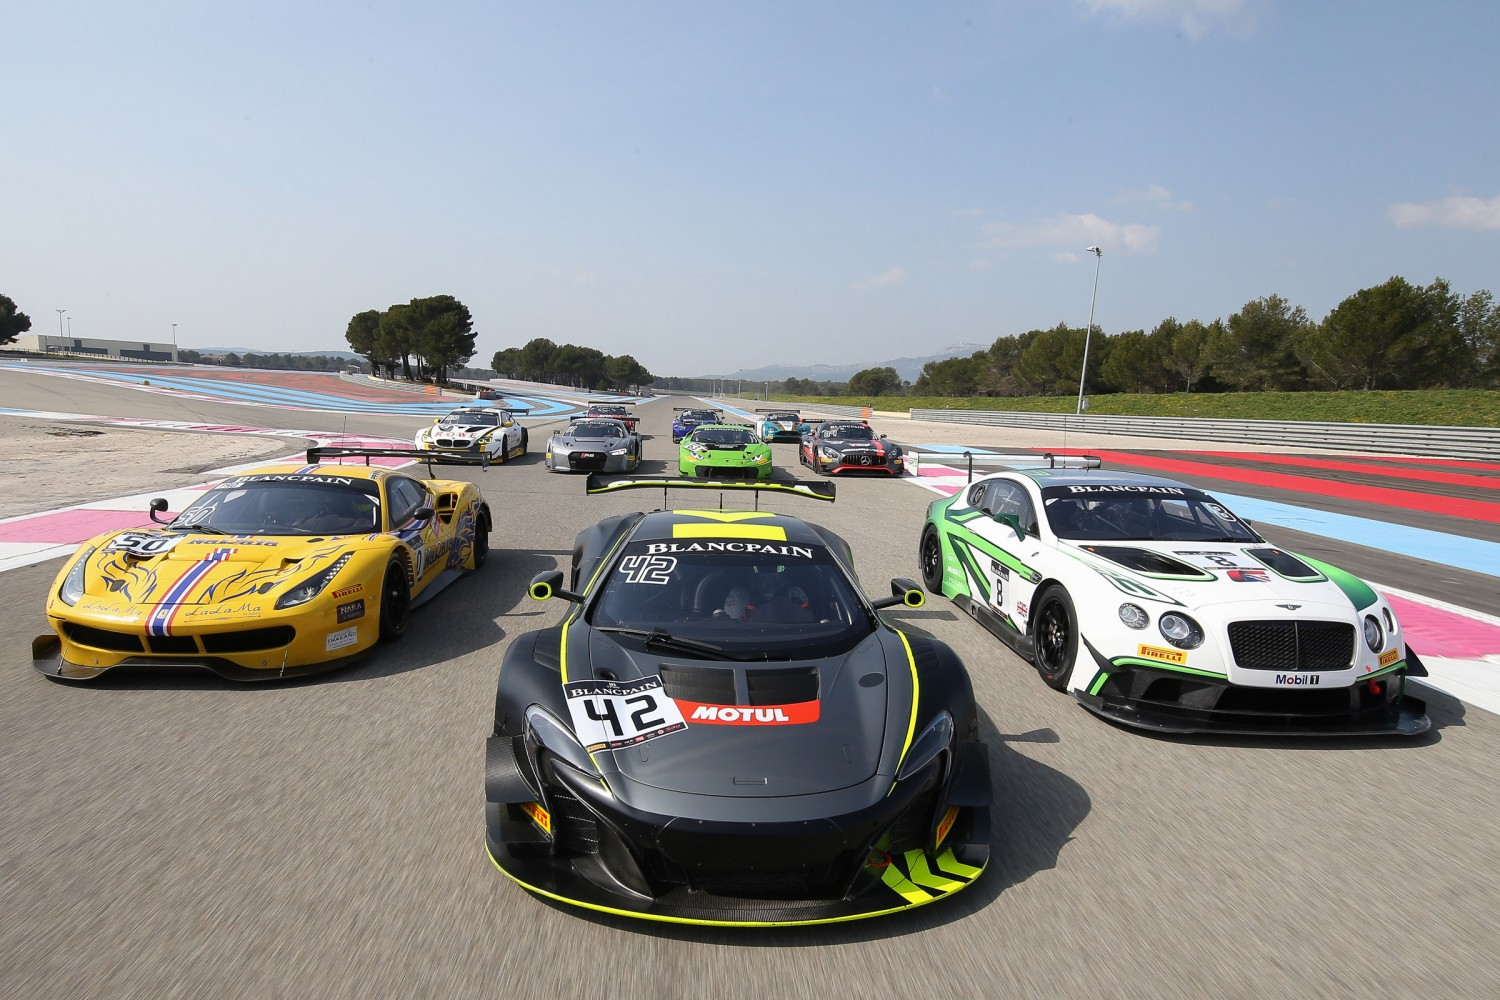 2017 Blancpain GT Series reaches new heights